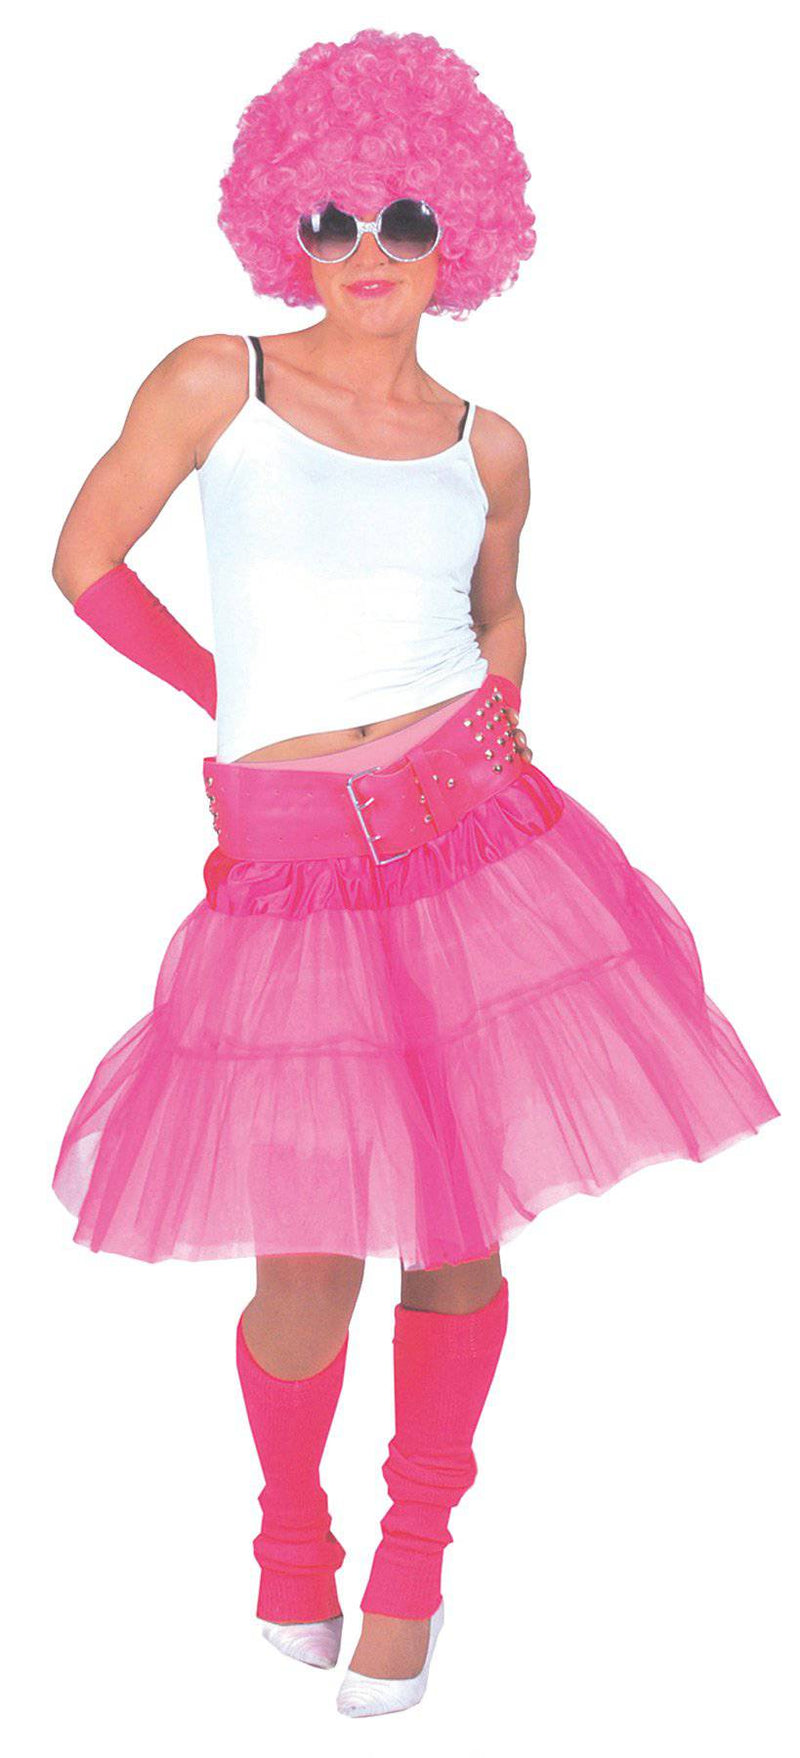 Funny Fashion Material Girl Skirt Theme Costume Accessory - Costume Arena